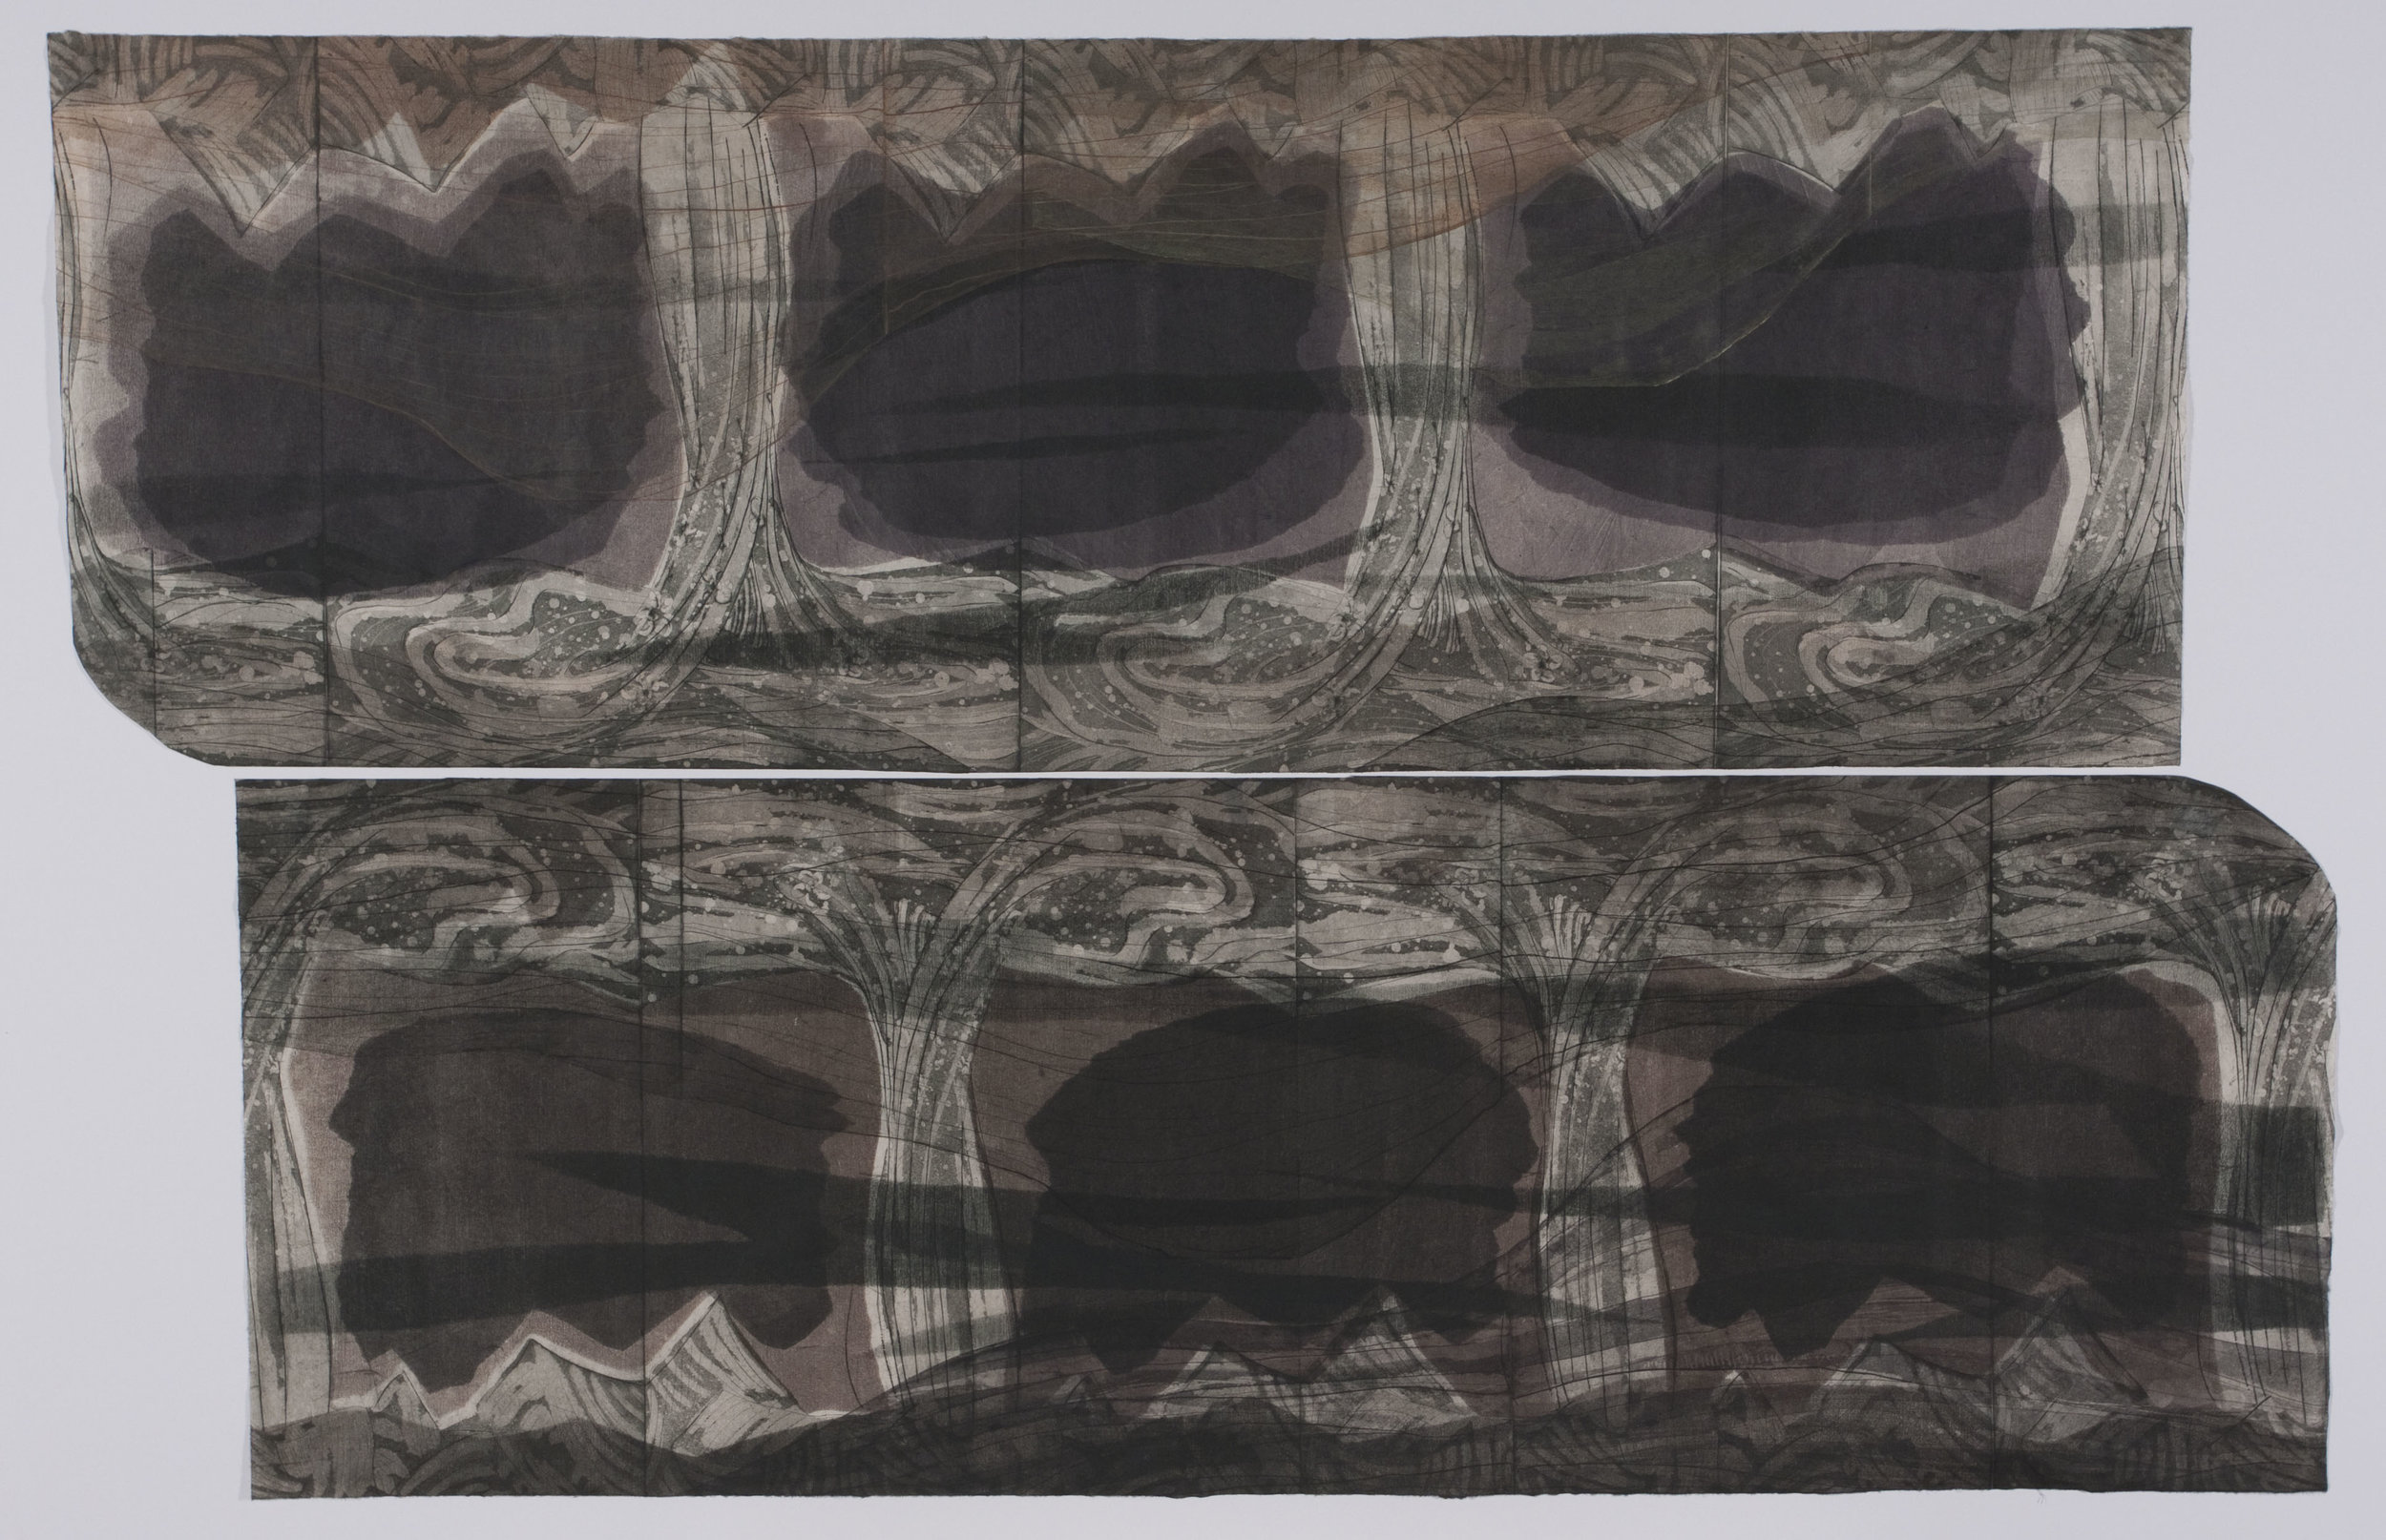 Lofgren_Seams_intaglio-relief_35x57in.jpg